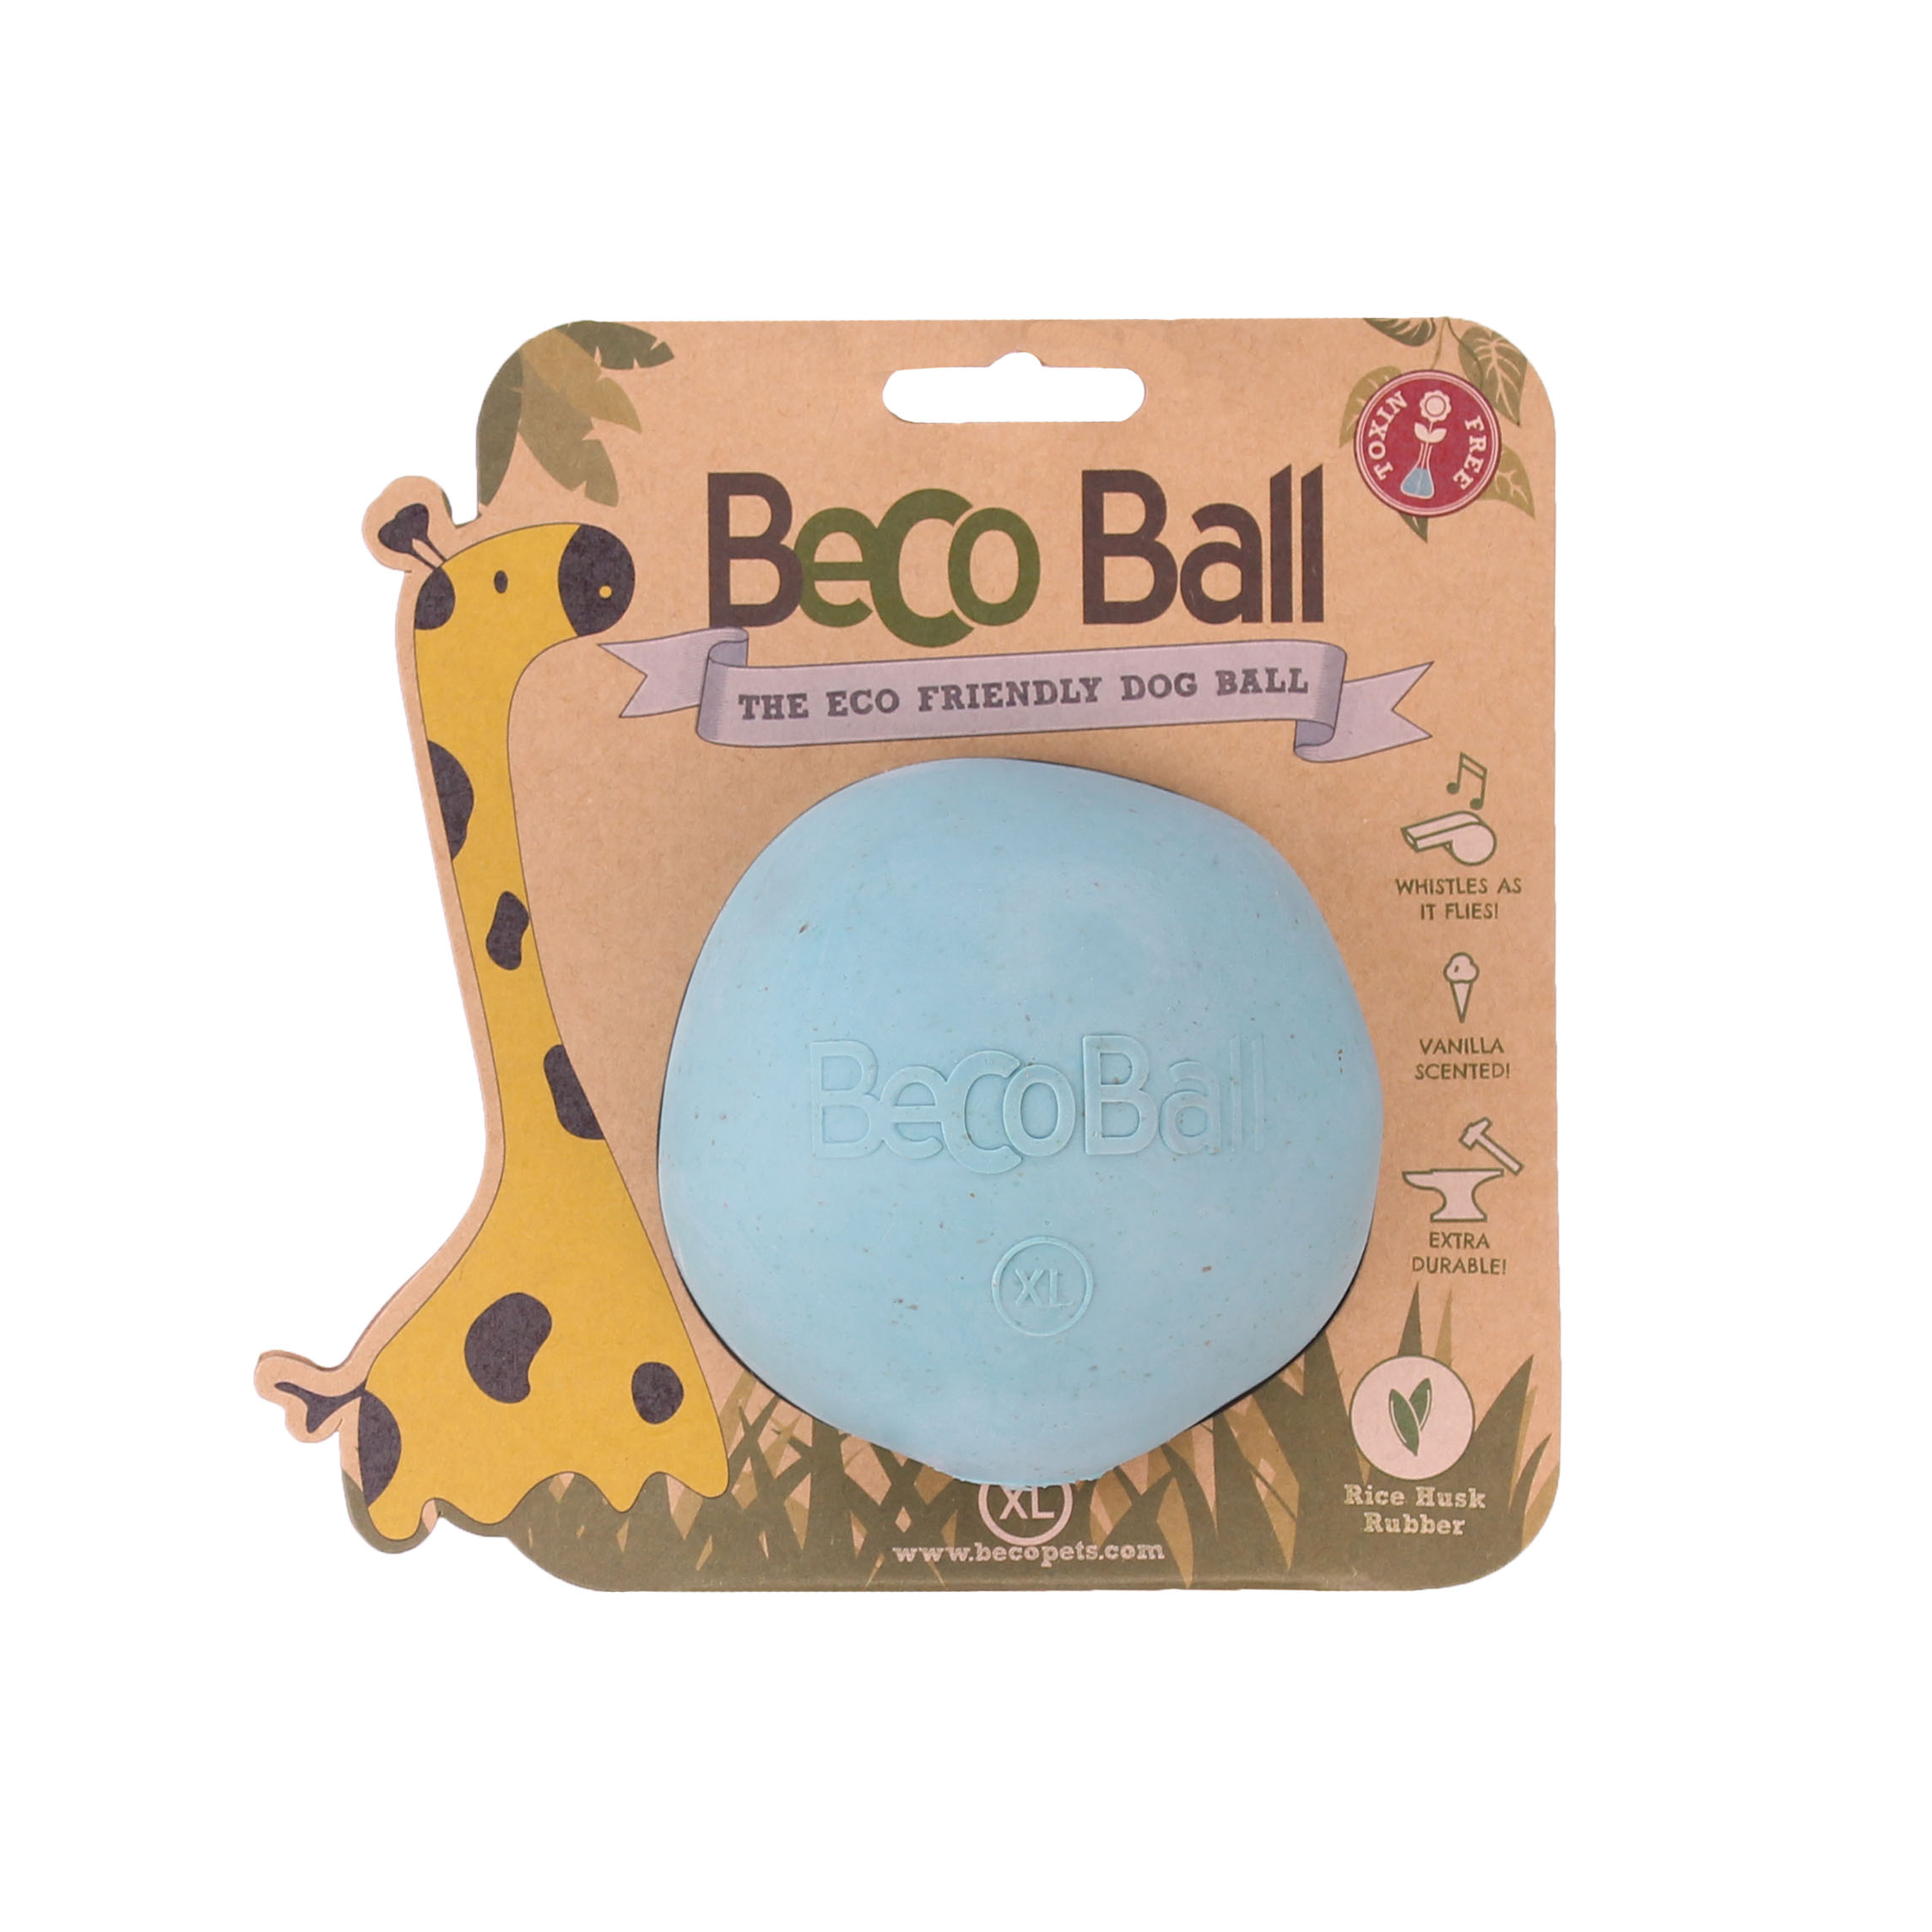 Beco Ball Dog Toy Dog Toy, Blue, Small